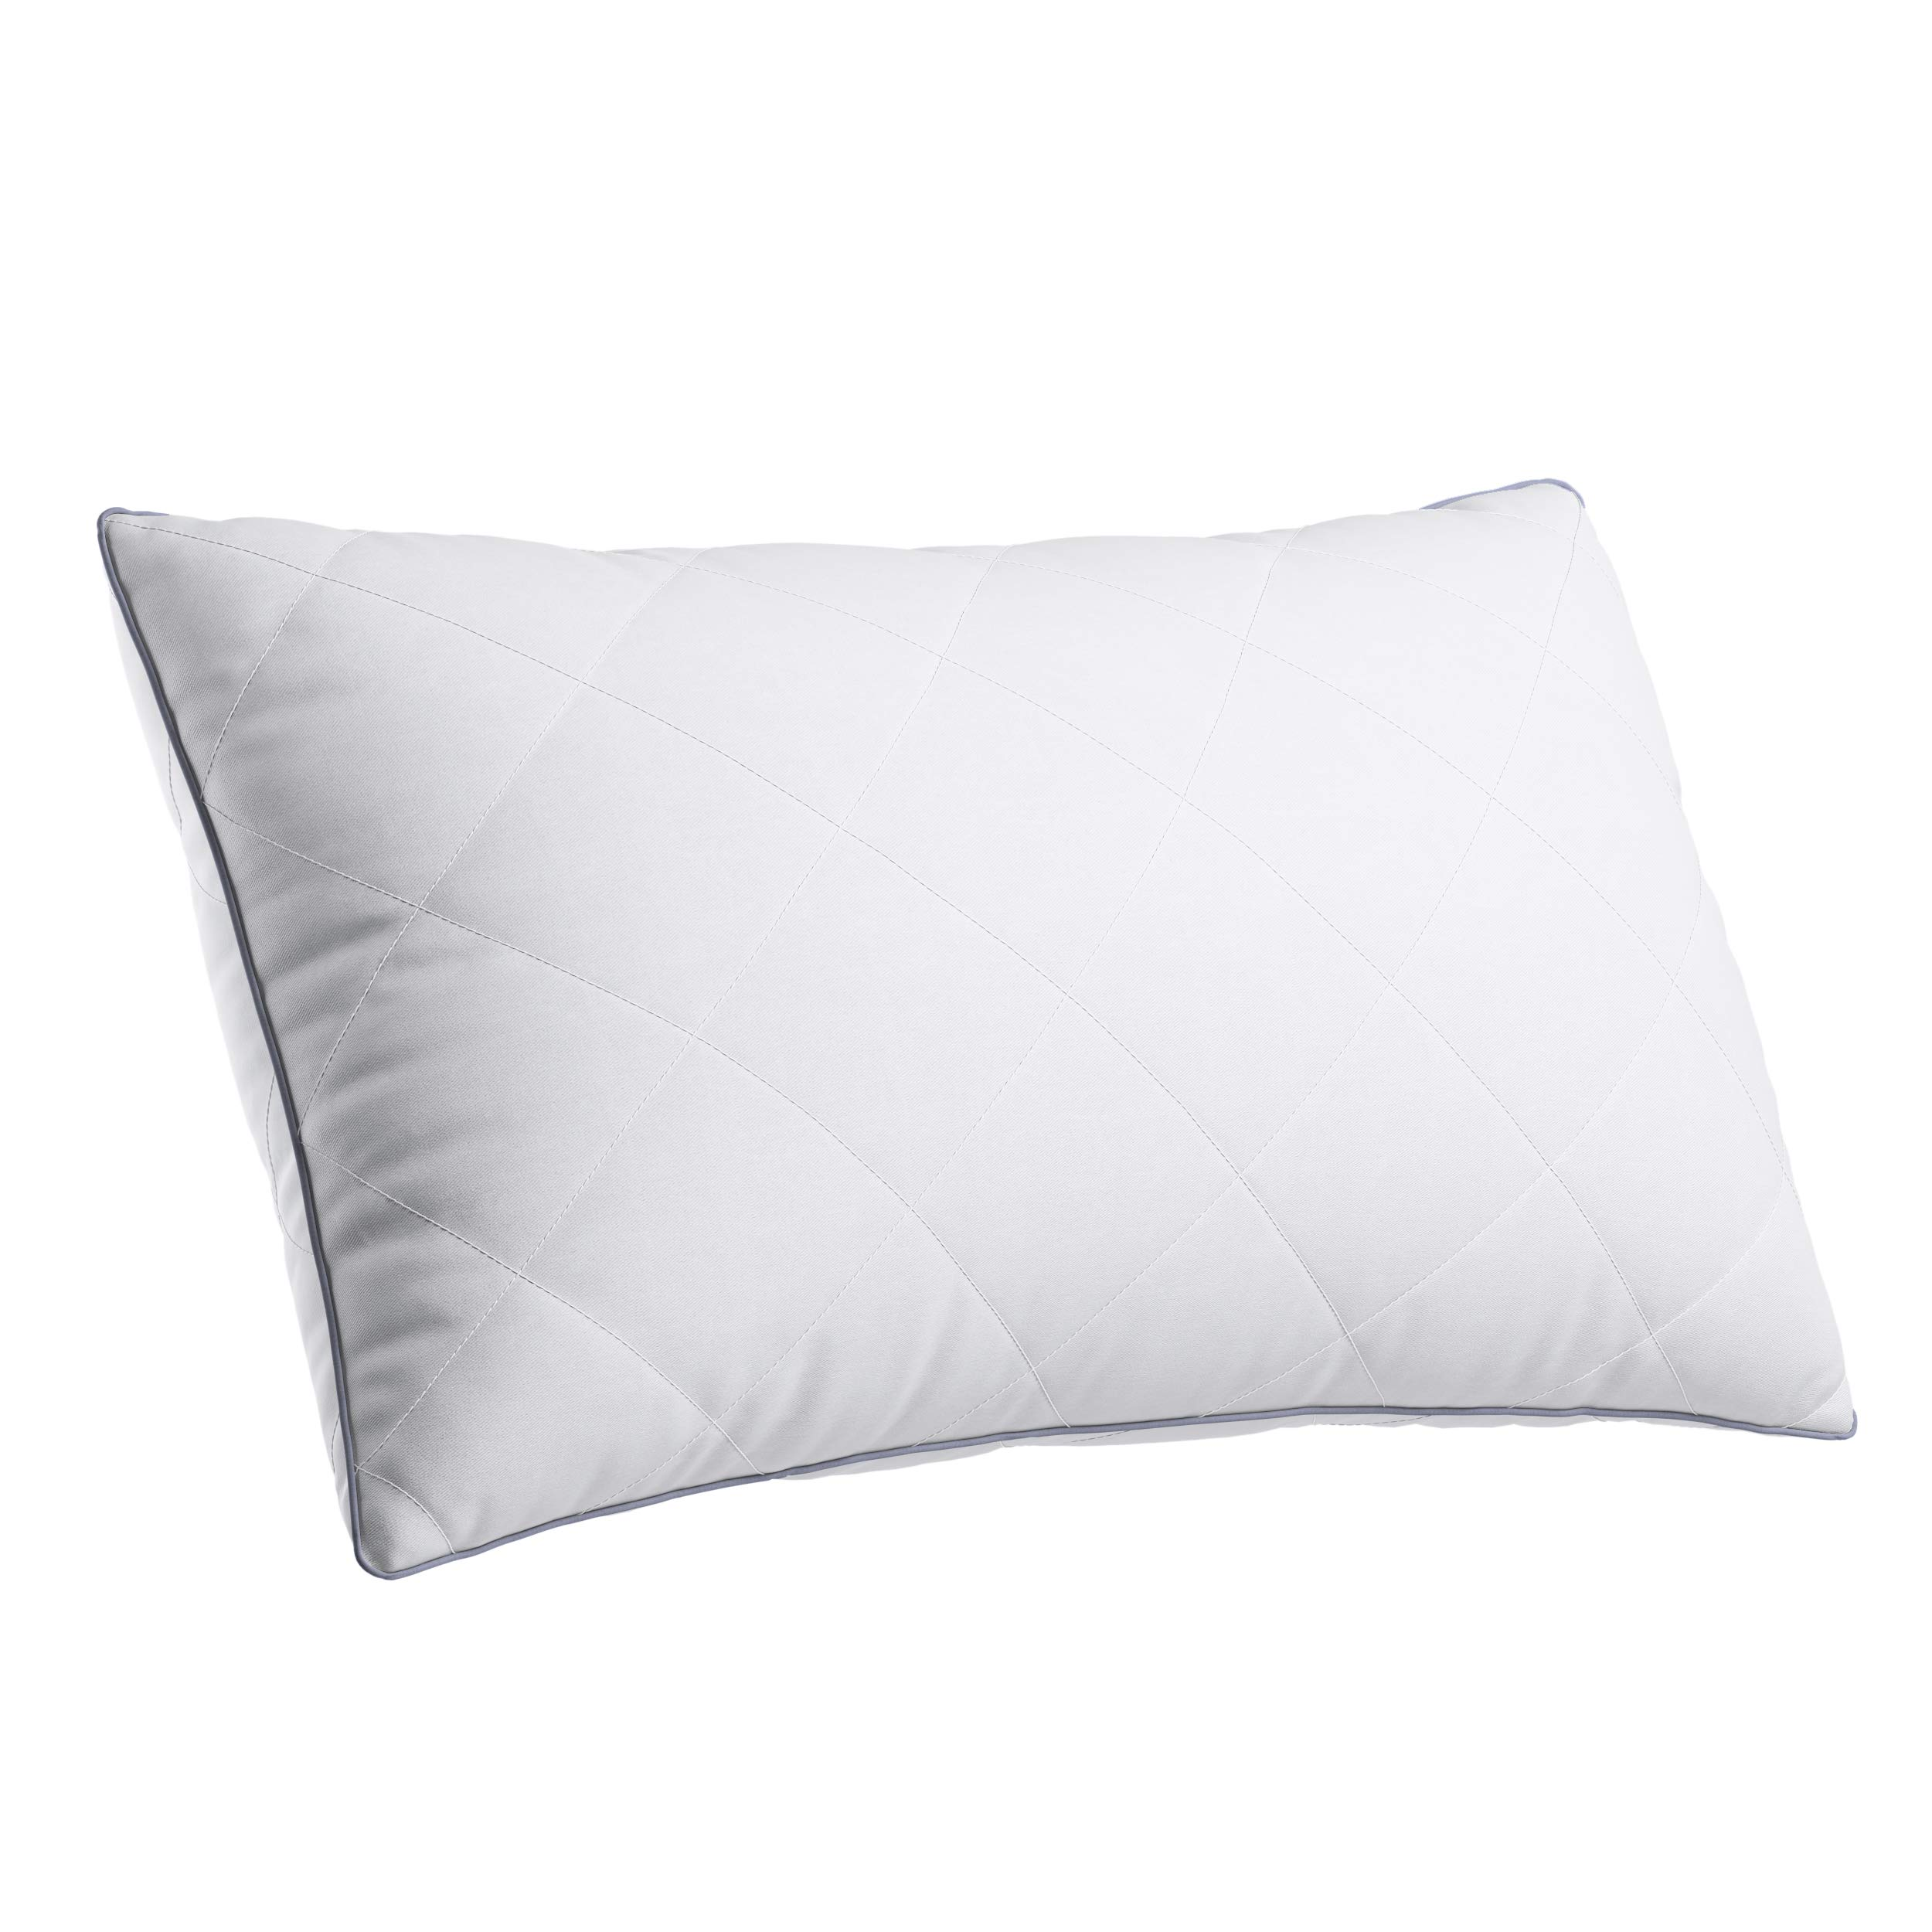 LANGRIA Luxury Adjustable Bed Pillows - Down Alternative Sleeping Pillow Comfortable for Home + Hotel Collection for Side Back Stomach Sleeper with 100% Cotton Cover Odor-Free Washable - Queen Size